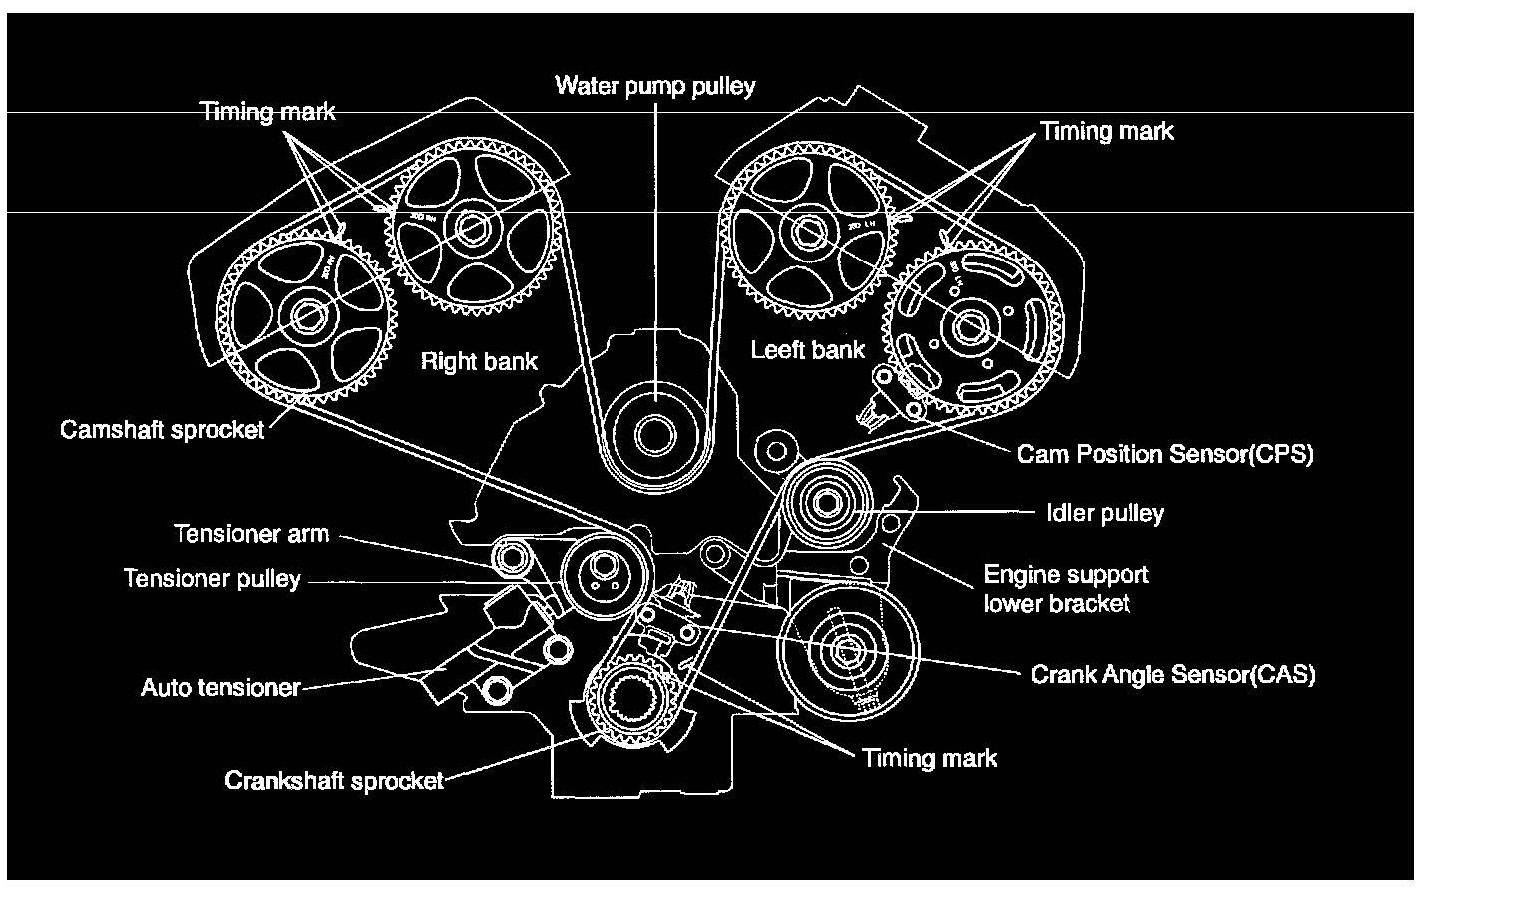 2003 Kia Sorento Wiring Diagram On Kia Wiring Diagrams Automotive